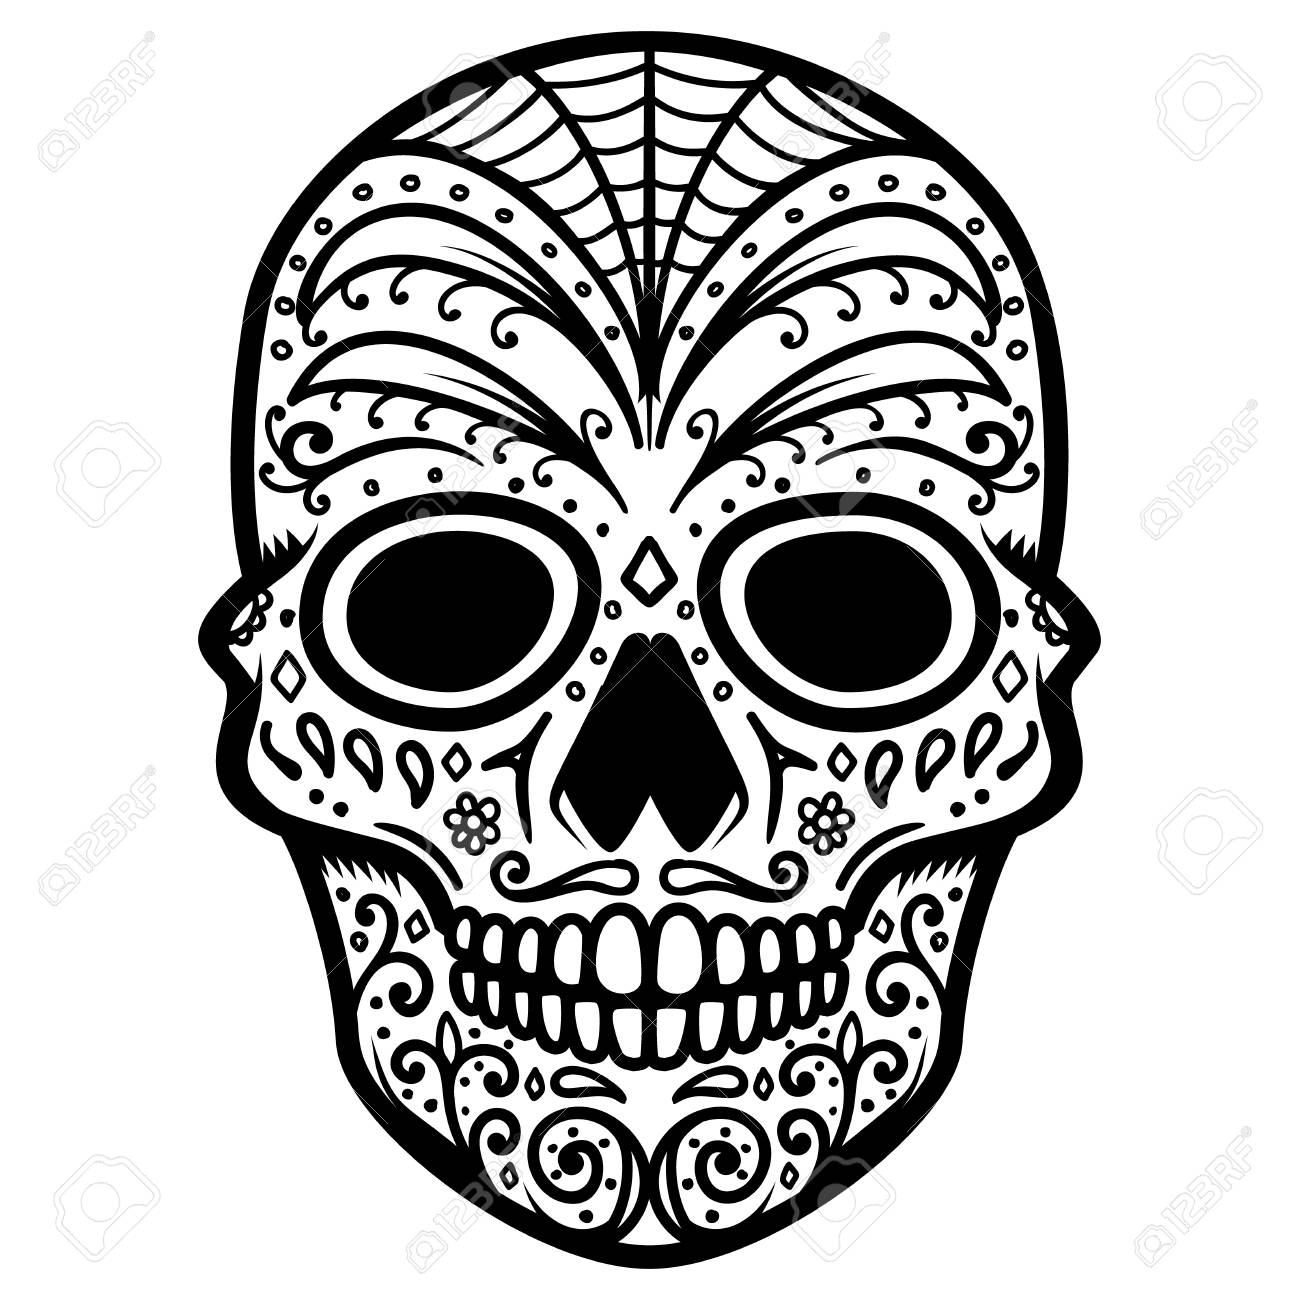 Illustration Of Mexican Sugar Skull Day Of The Dead Dia De Royalty Free Cliparts Vectors And Stock Illustration Image 109016517